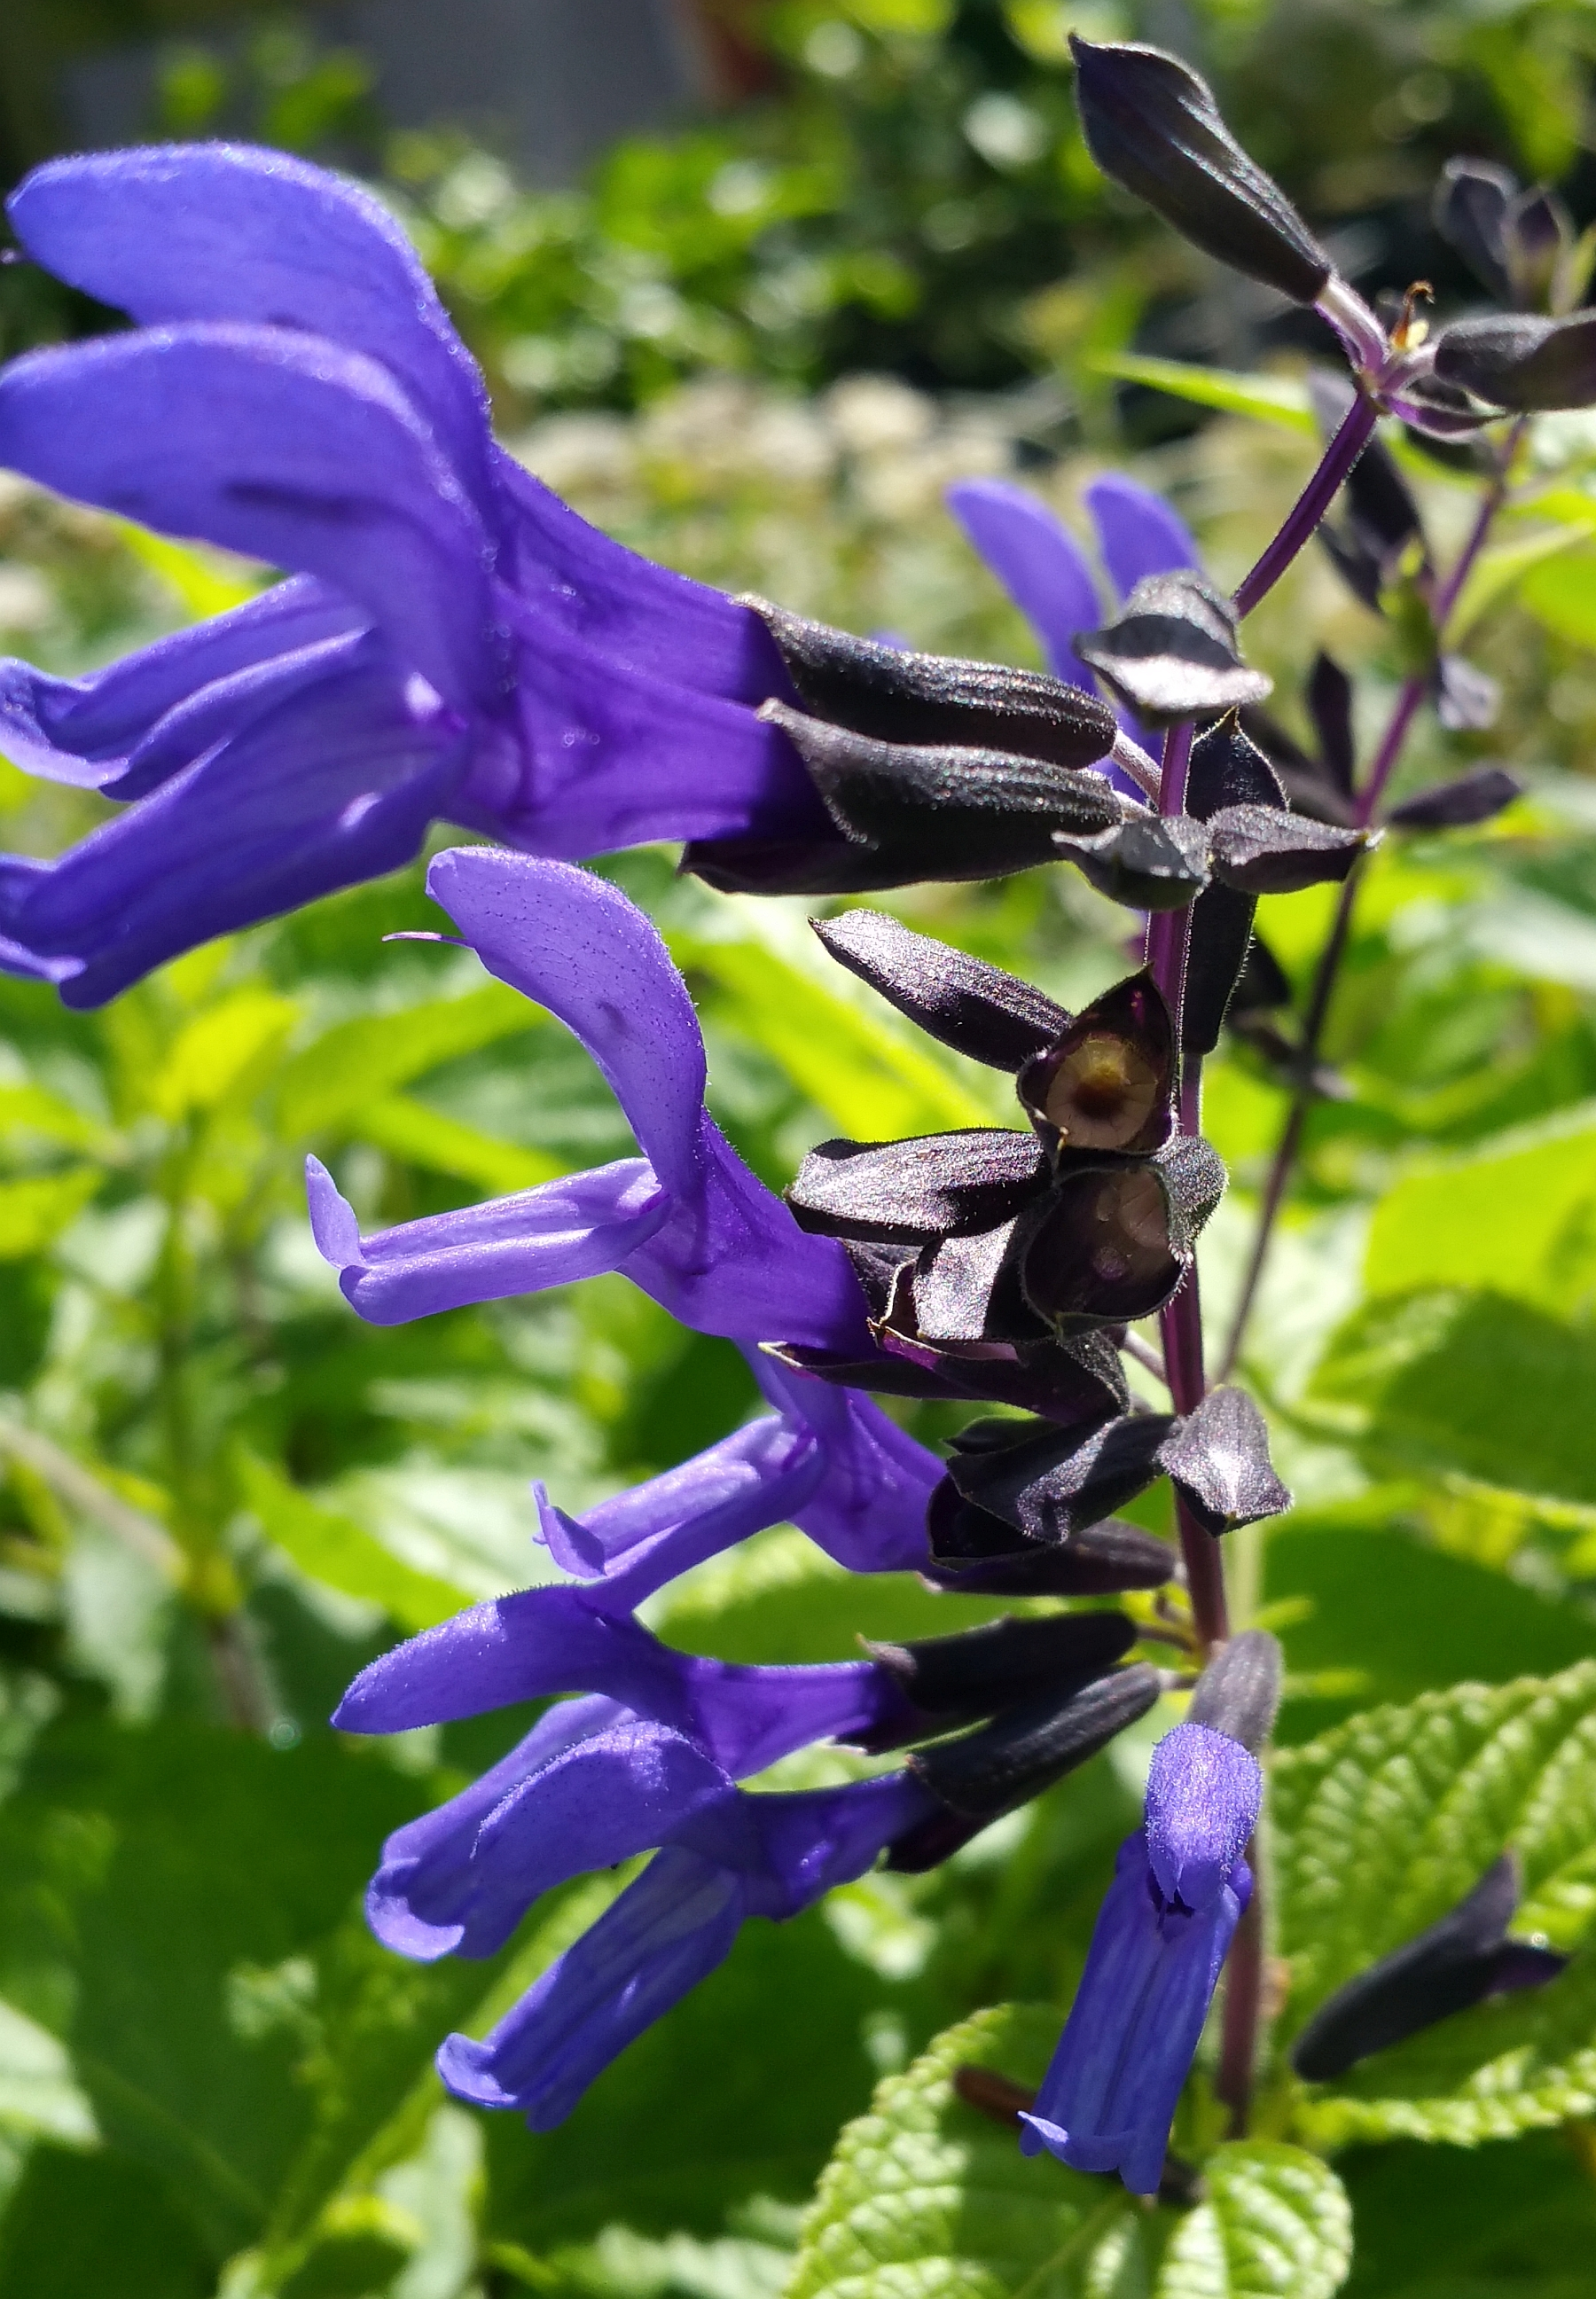 Black and blue salvia sage live perennial plant unusual sapphire black and blue salvia sage live perennial plant unusual sapphire colored flowers attract hummingbirds starter size larger image izmirmasajfo